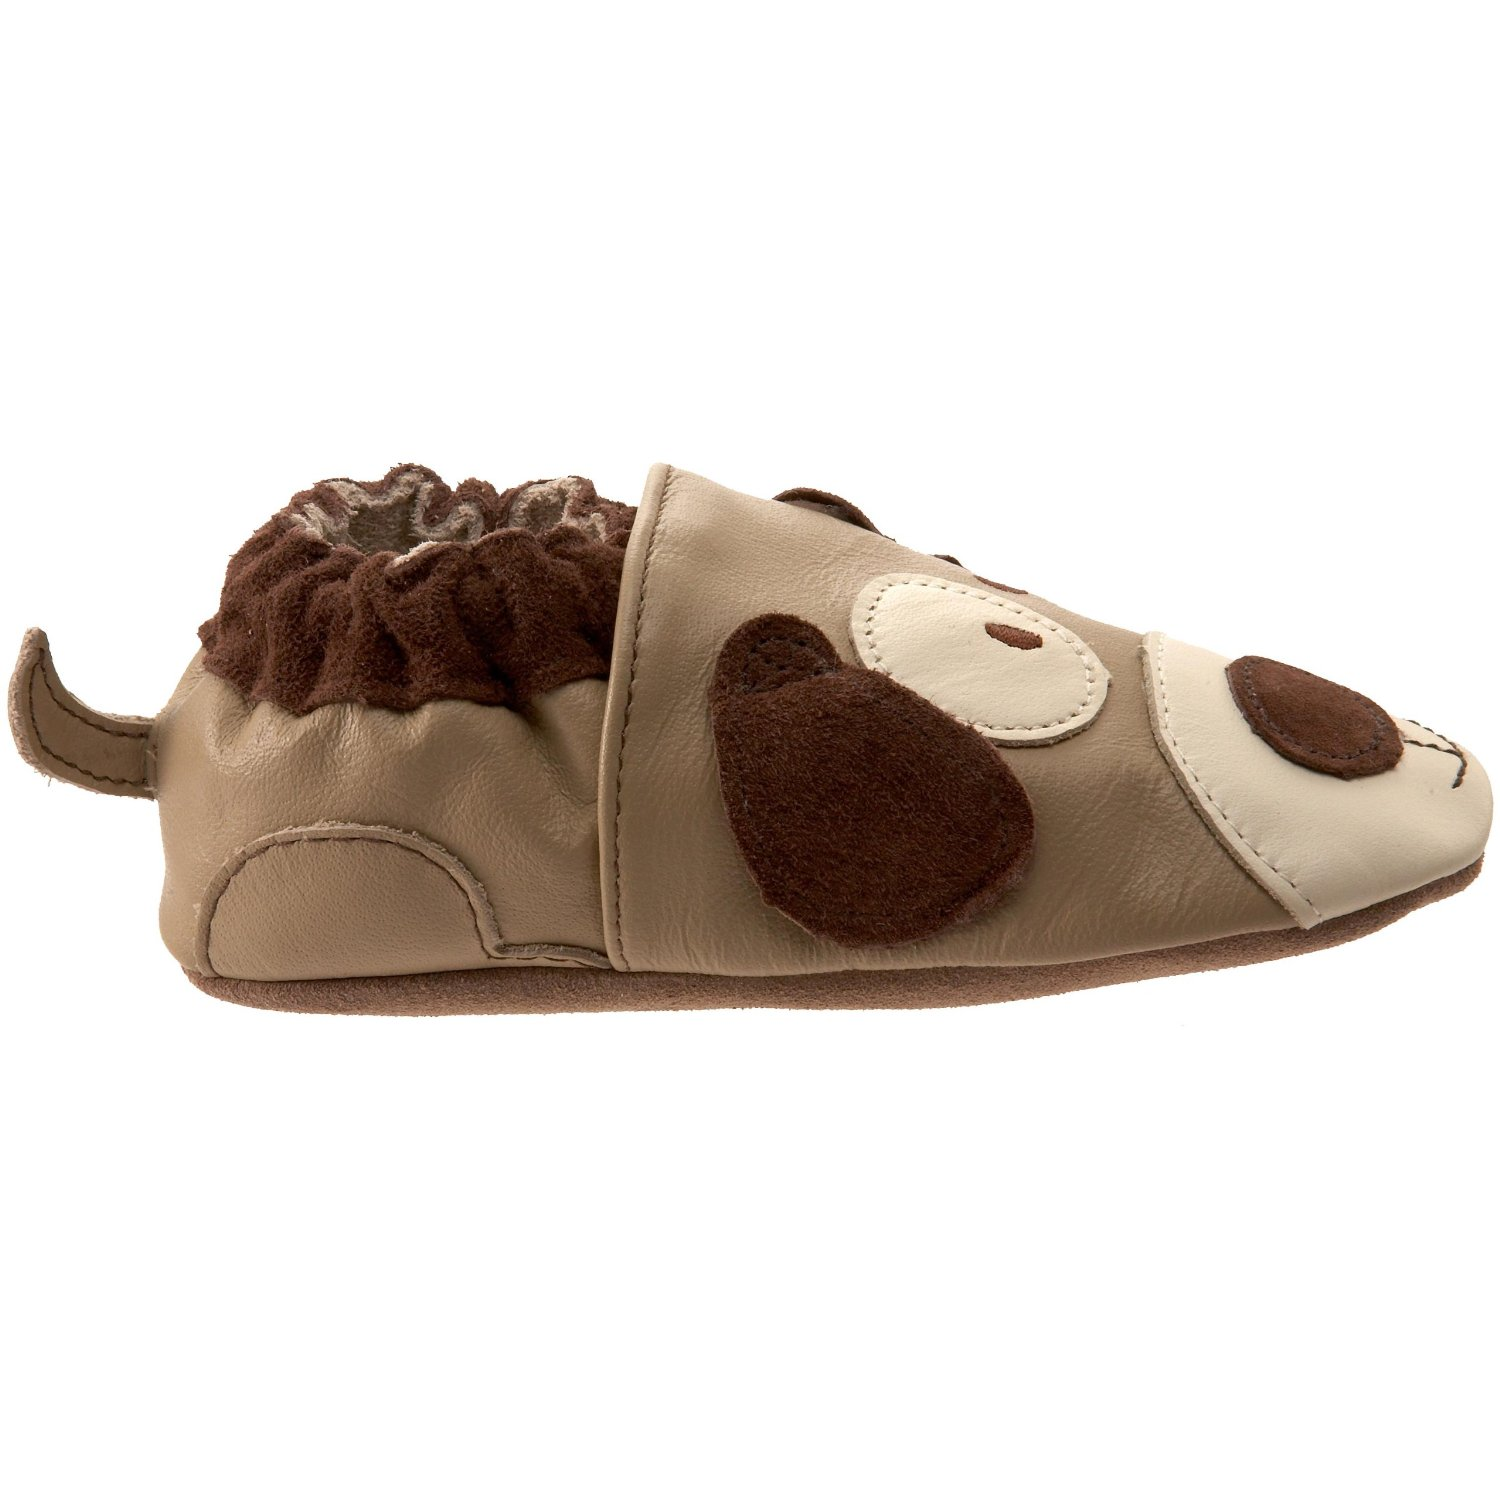 have outgrew purchased is loved this crib robeez second cheap son puppy which soft shoe prince my pair style the of as shoes was with i first buy frog soles cribs